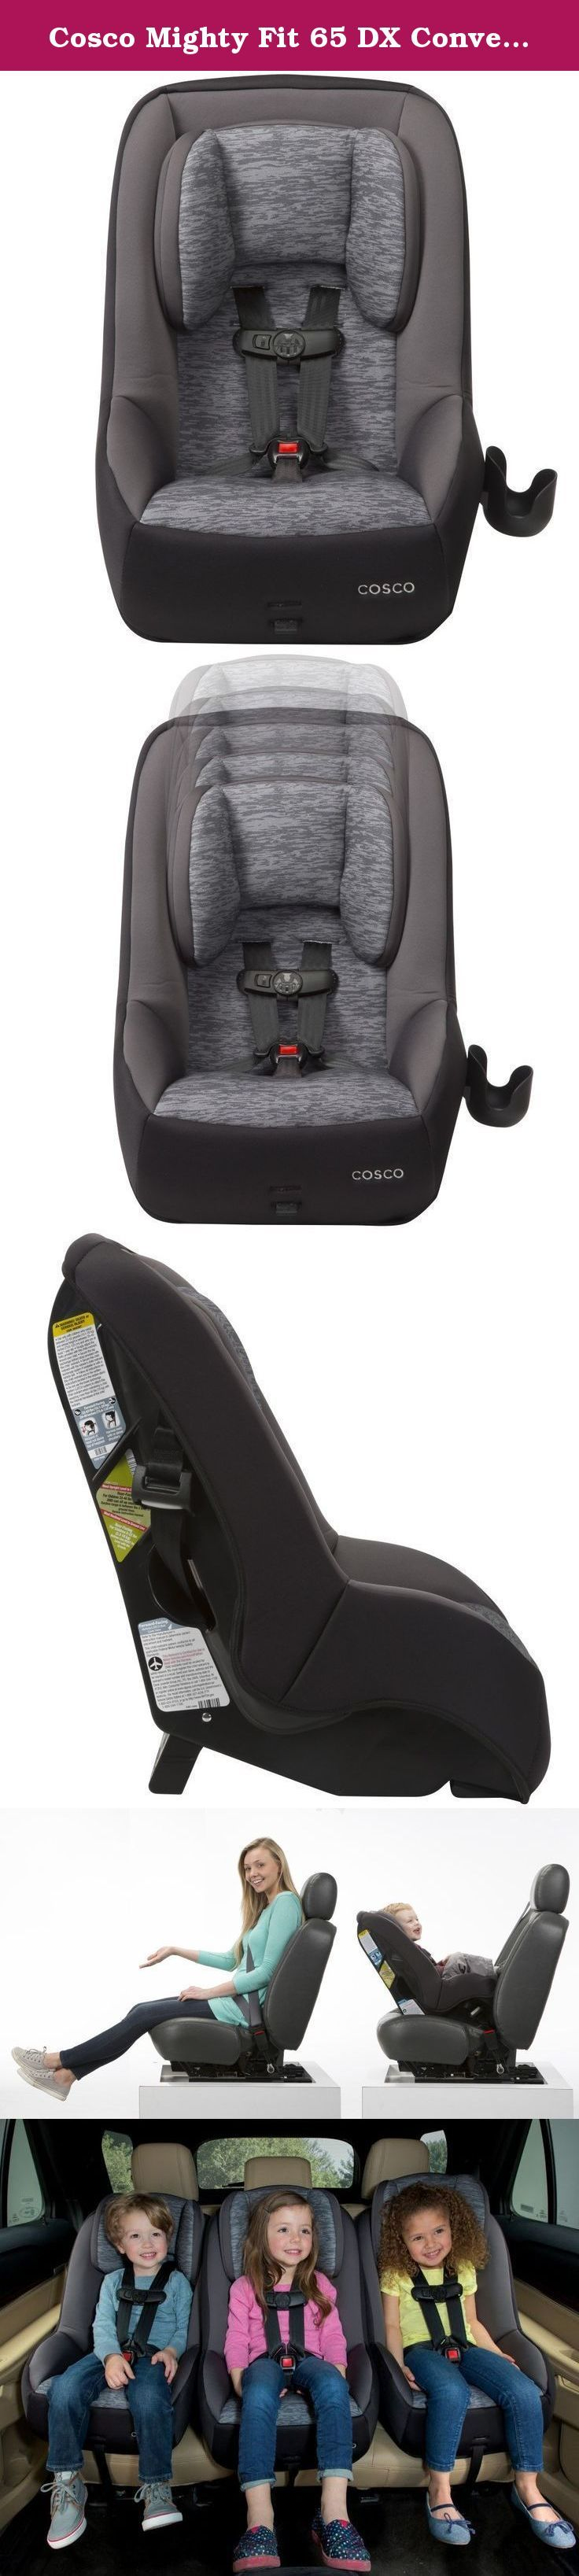 Cosco mighty fit 65 dx convertible car seat heather onyx gray get the car seat that s designed with your family s real life in mind the cosco mi